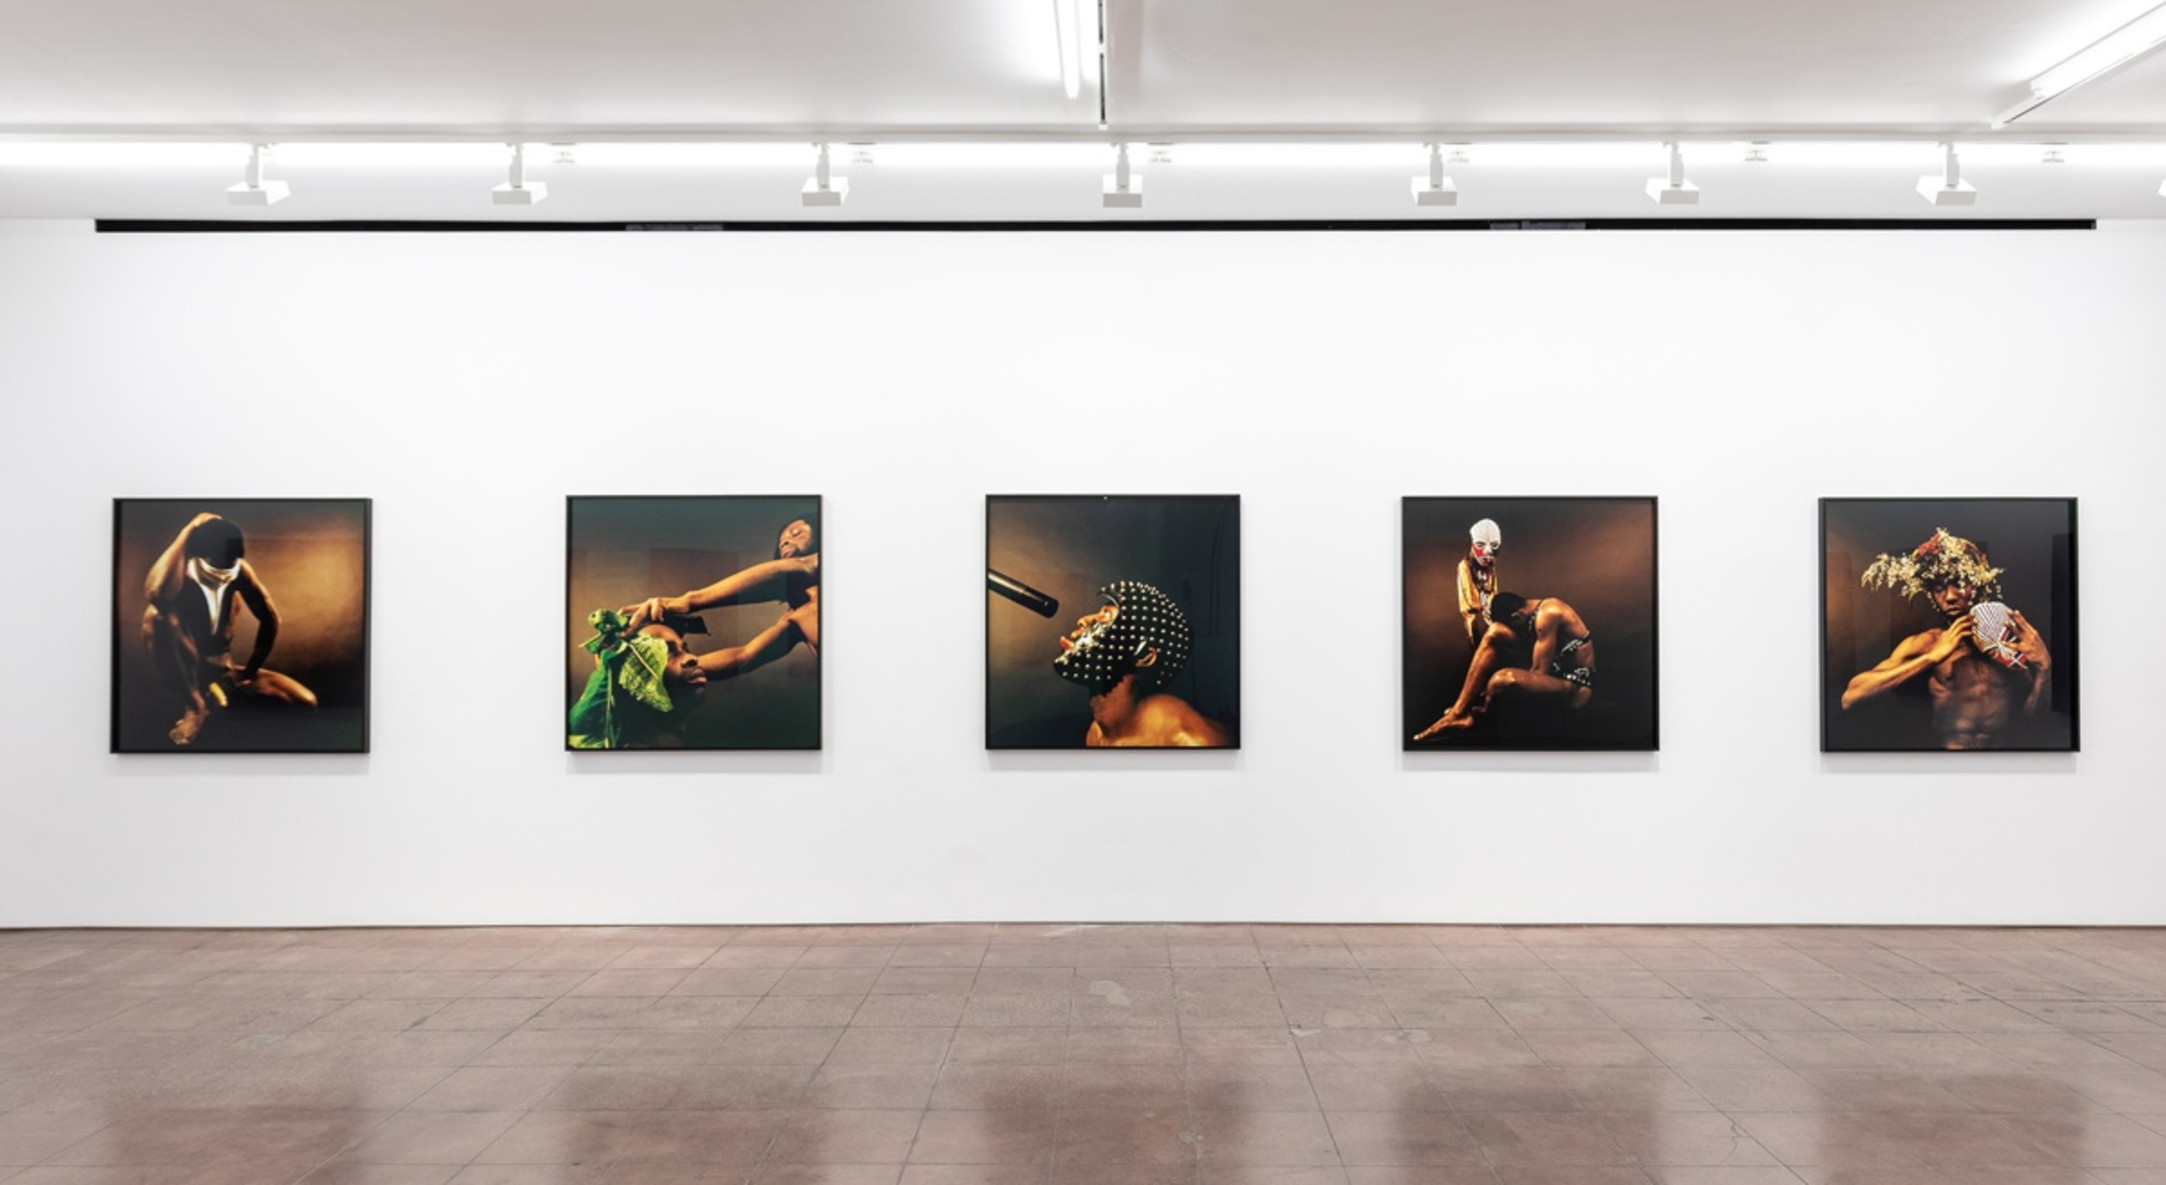 Installation view of Rotimi Fani Kayode, Tranquility of Communion, Hales New York